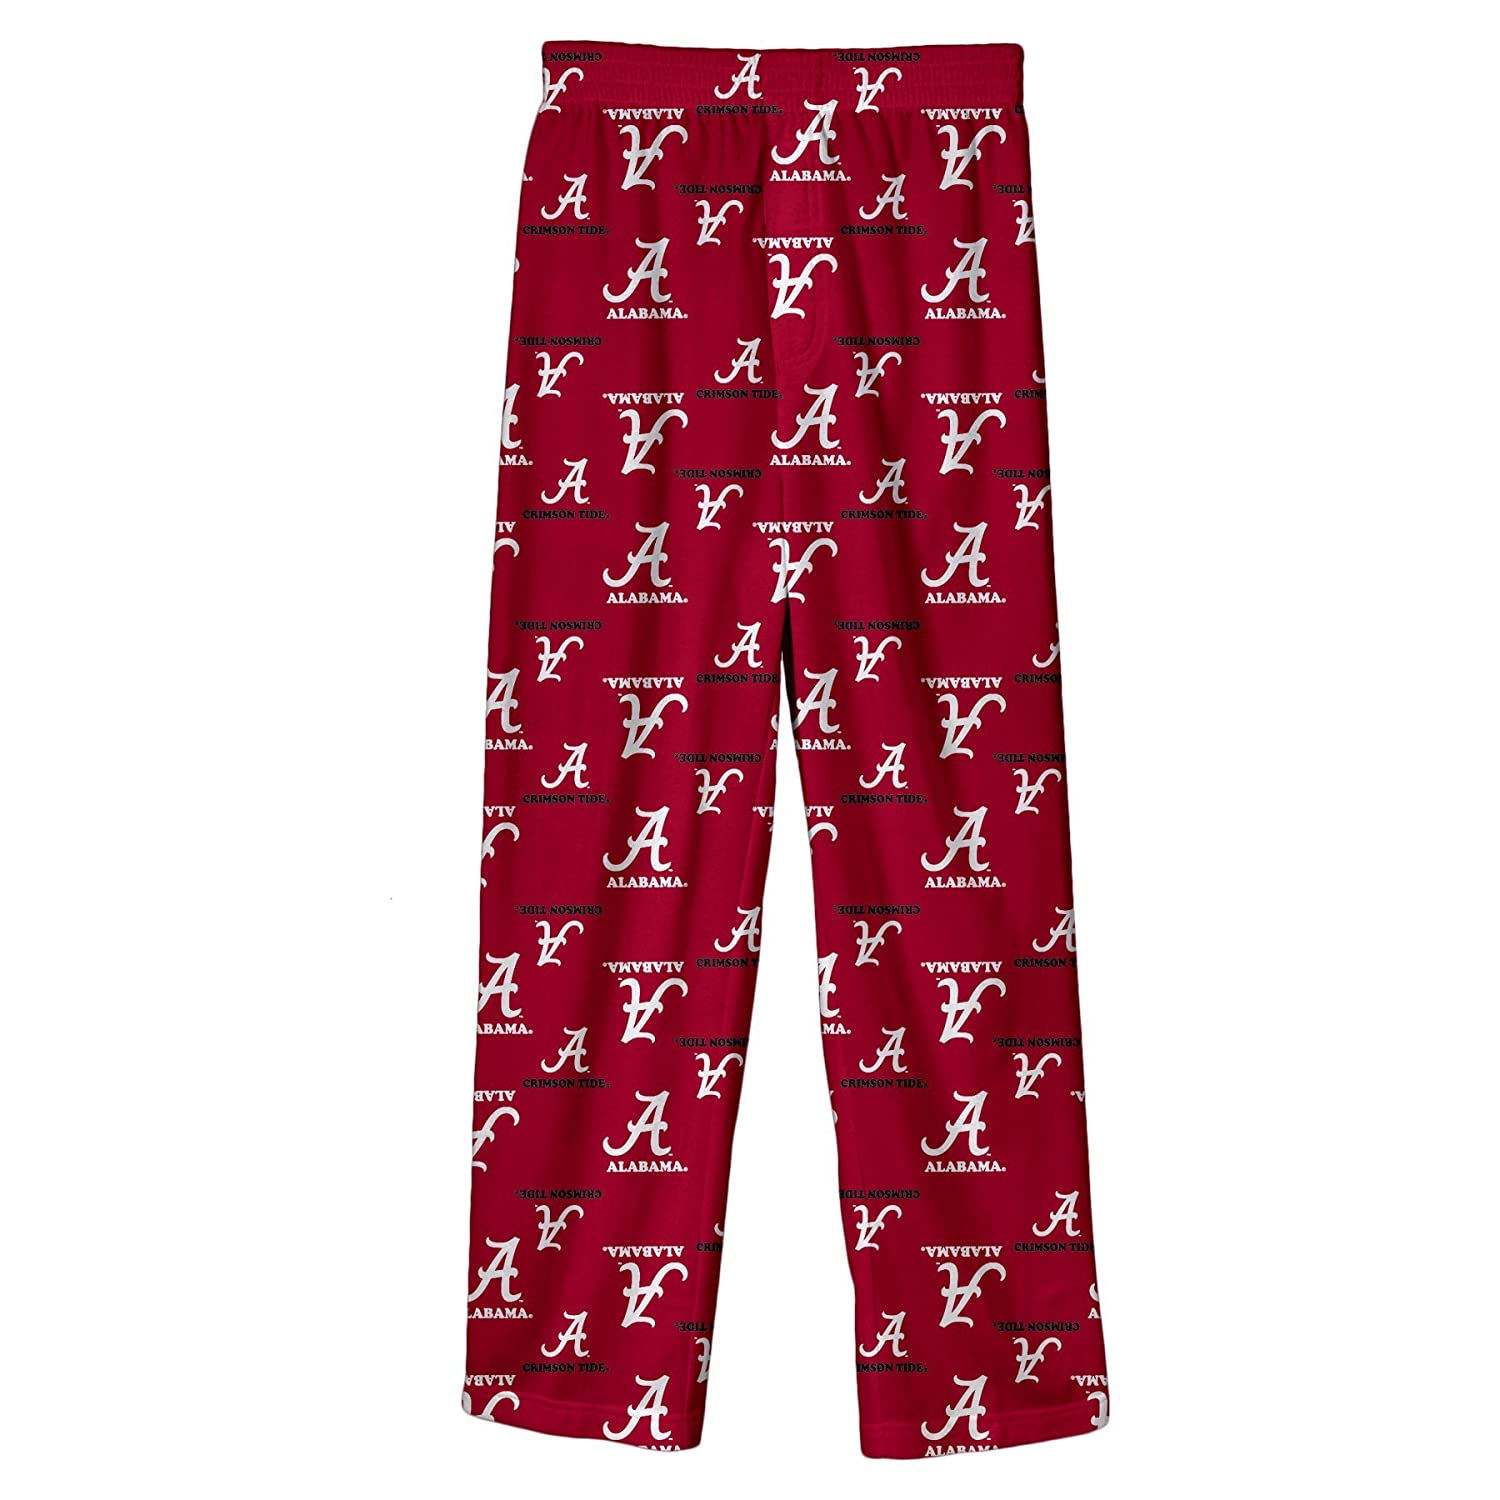 Youth Large NCAA Kids /& Youth Boys Printed Sleepwear Pant Boys Outerstuff Team Logo Lounge Pant 12-14 Team Color